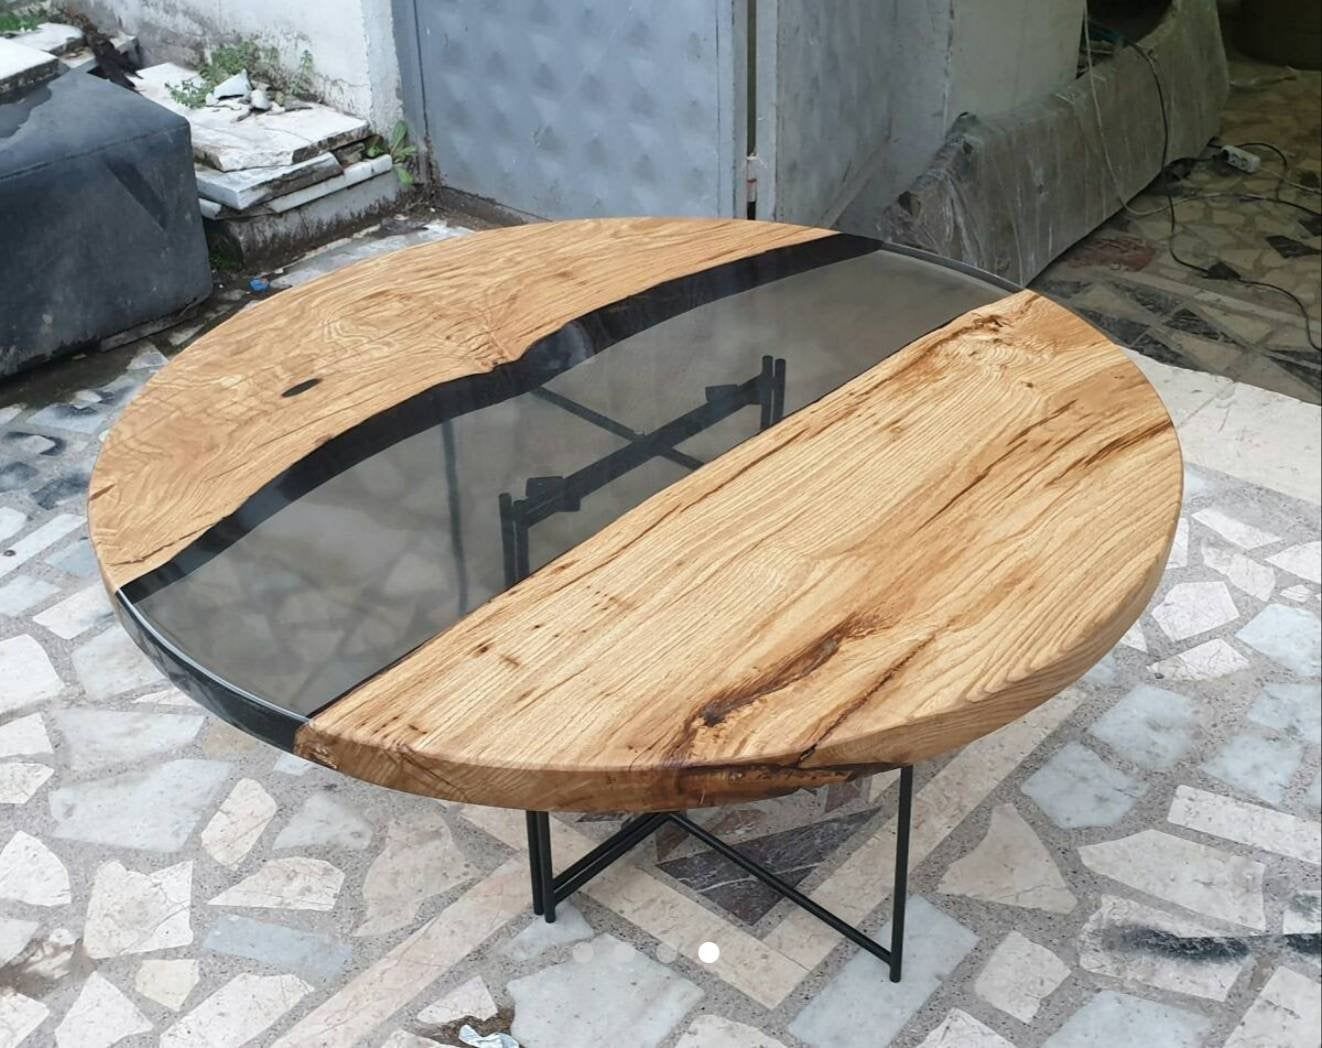 On Sale In Stock Epoxy Round Table Etsy Round Wood Coffee Table Resin Table Wood Rounds [ 1048 x 1322 Pixel ]